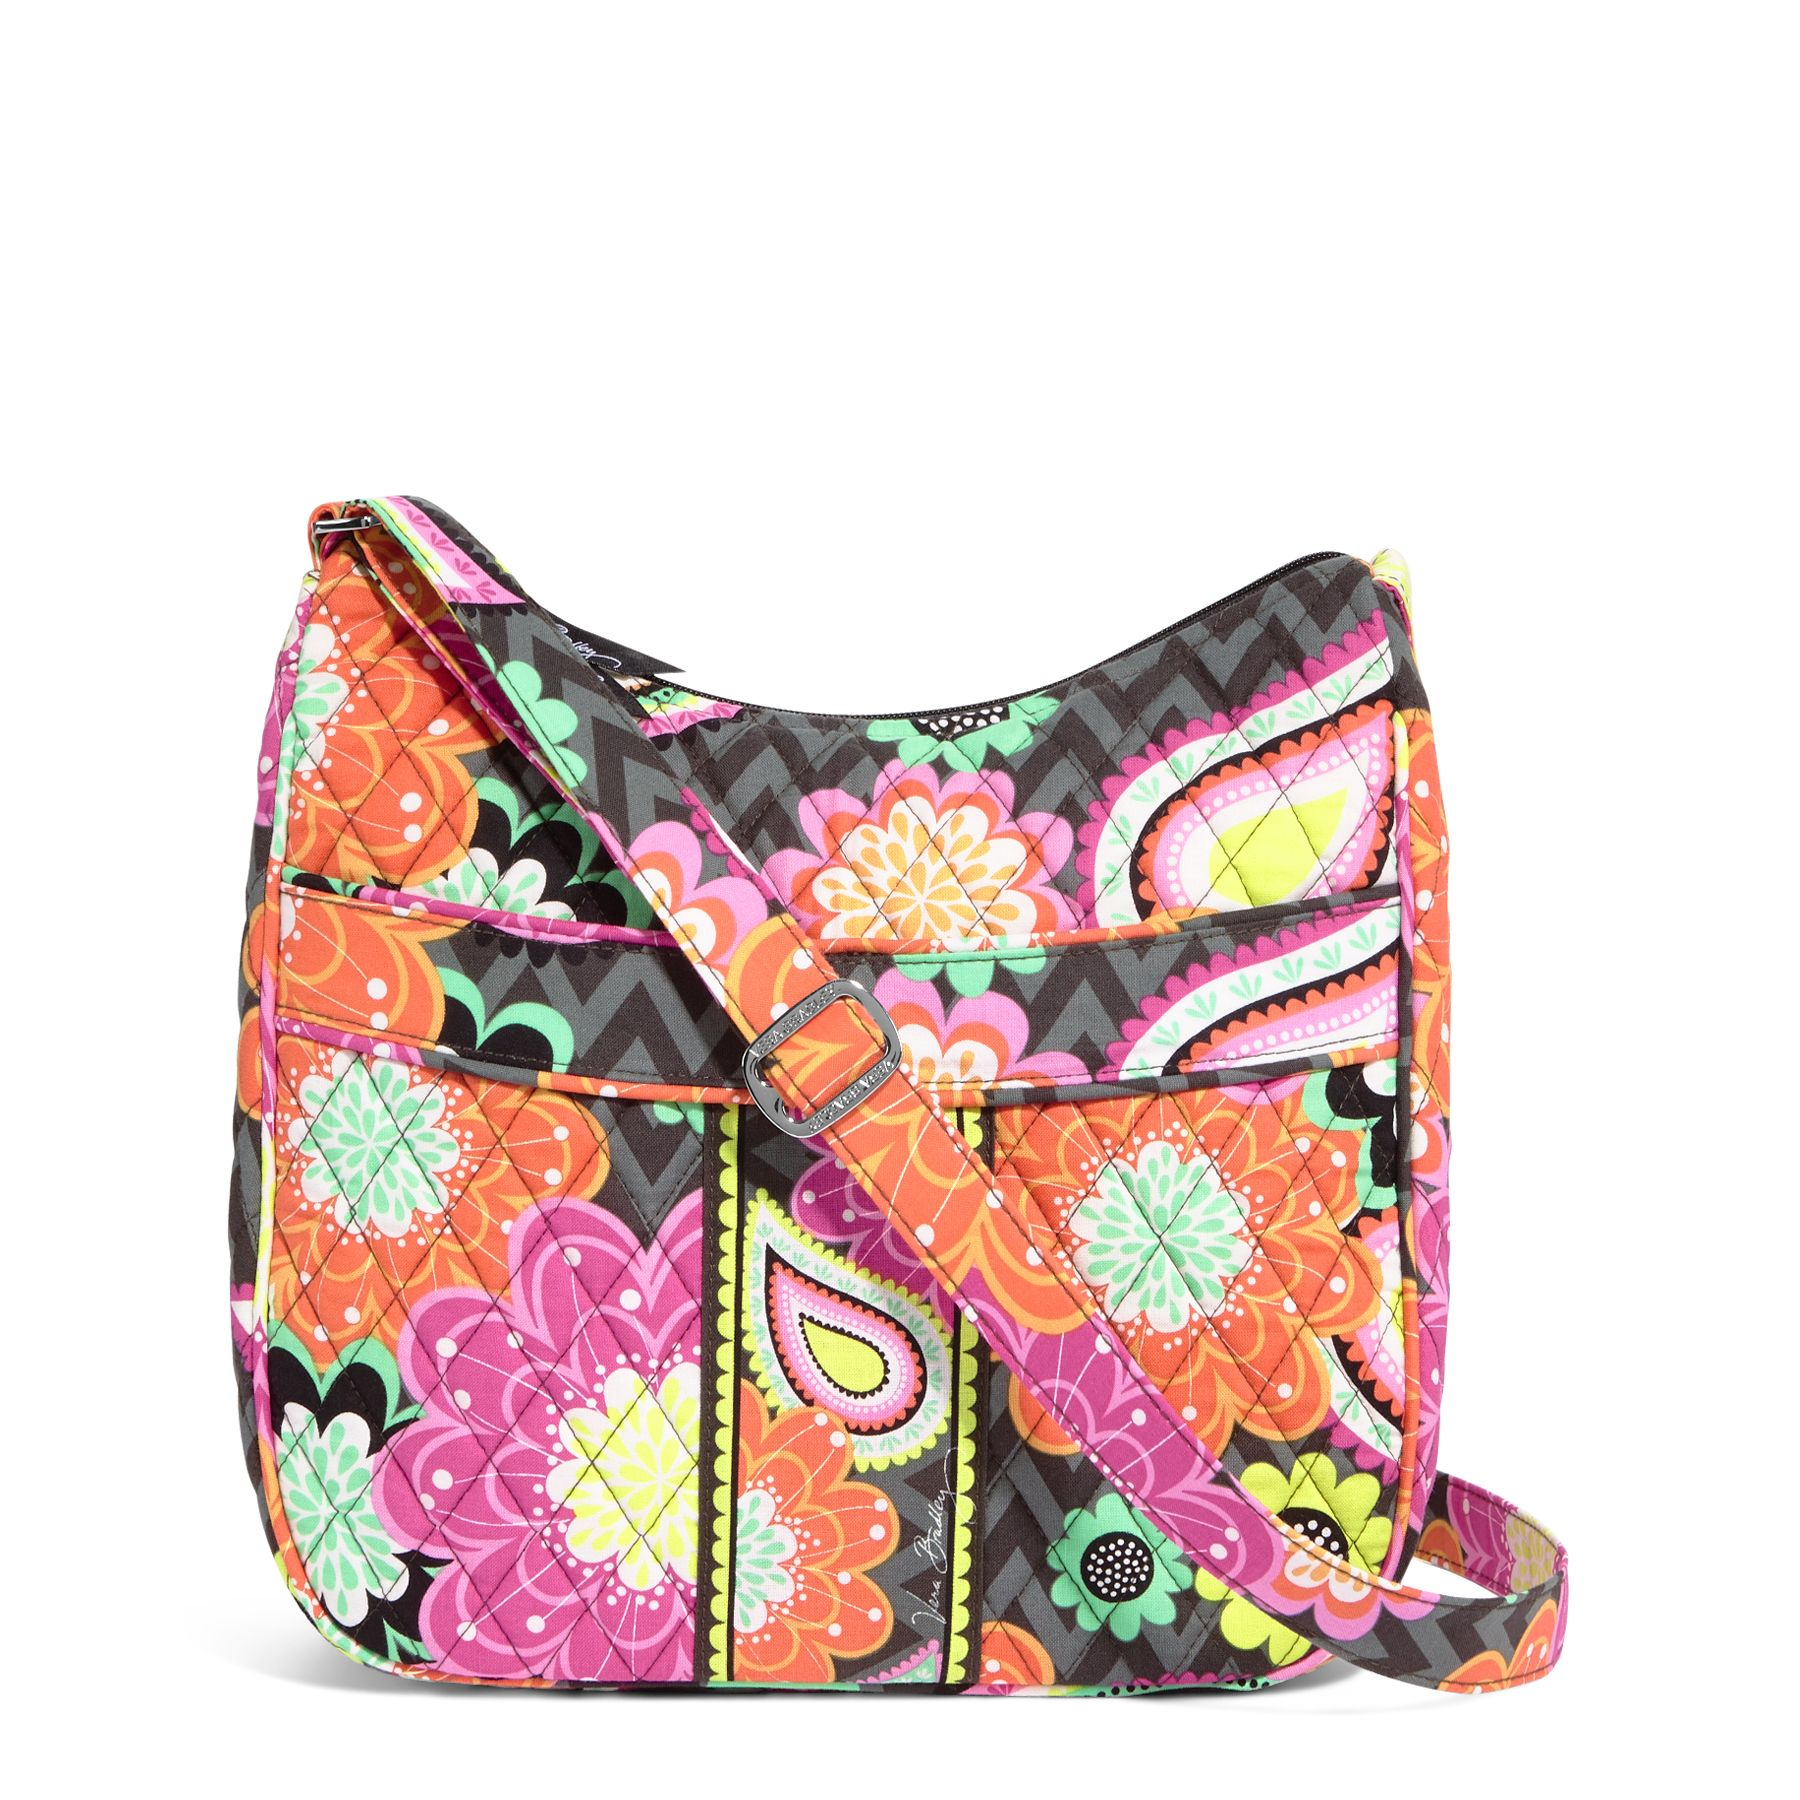 Vera Bradley Shoulder Bag 61